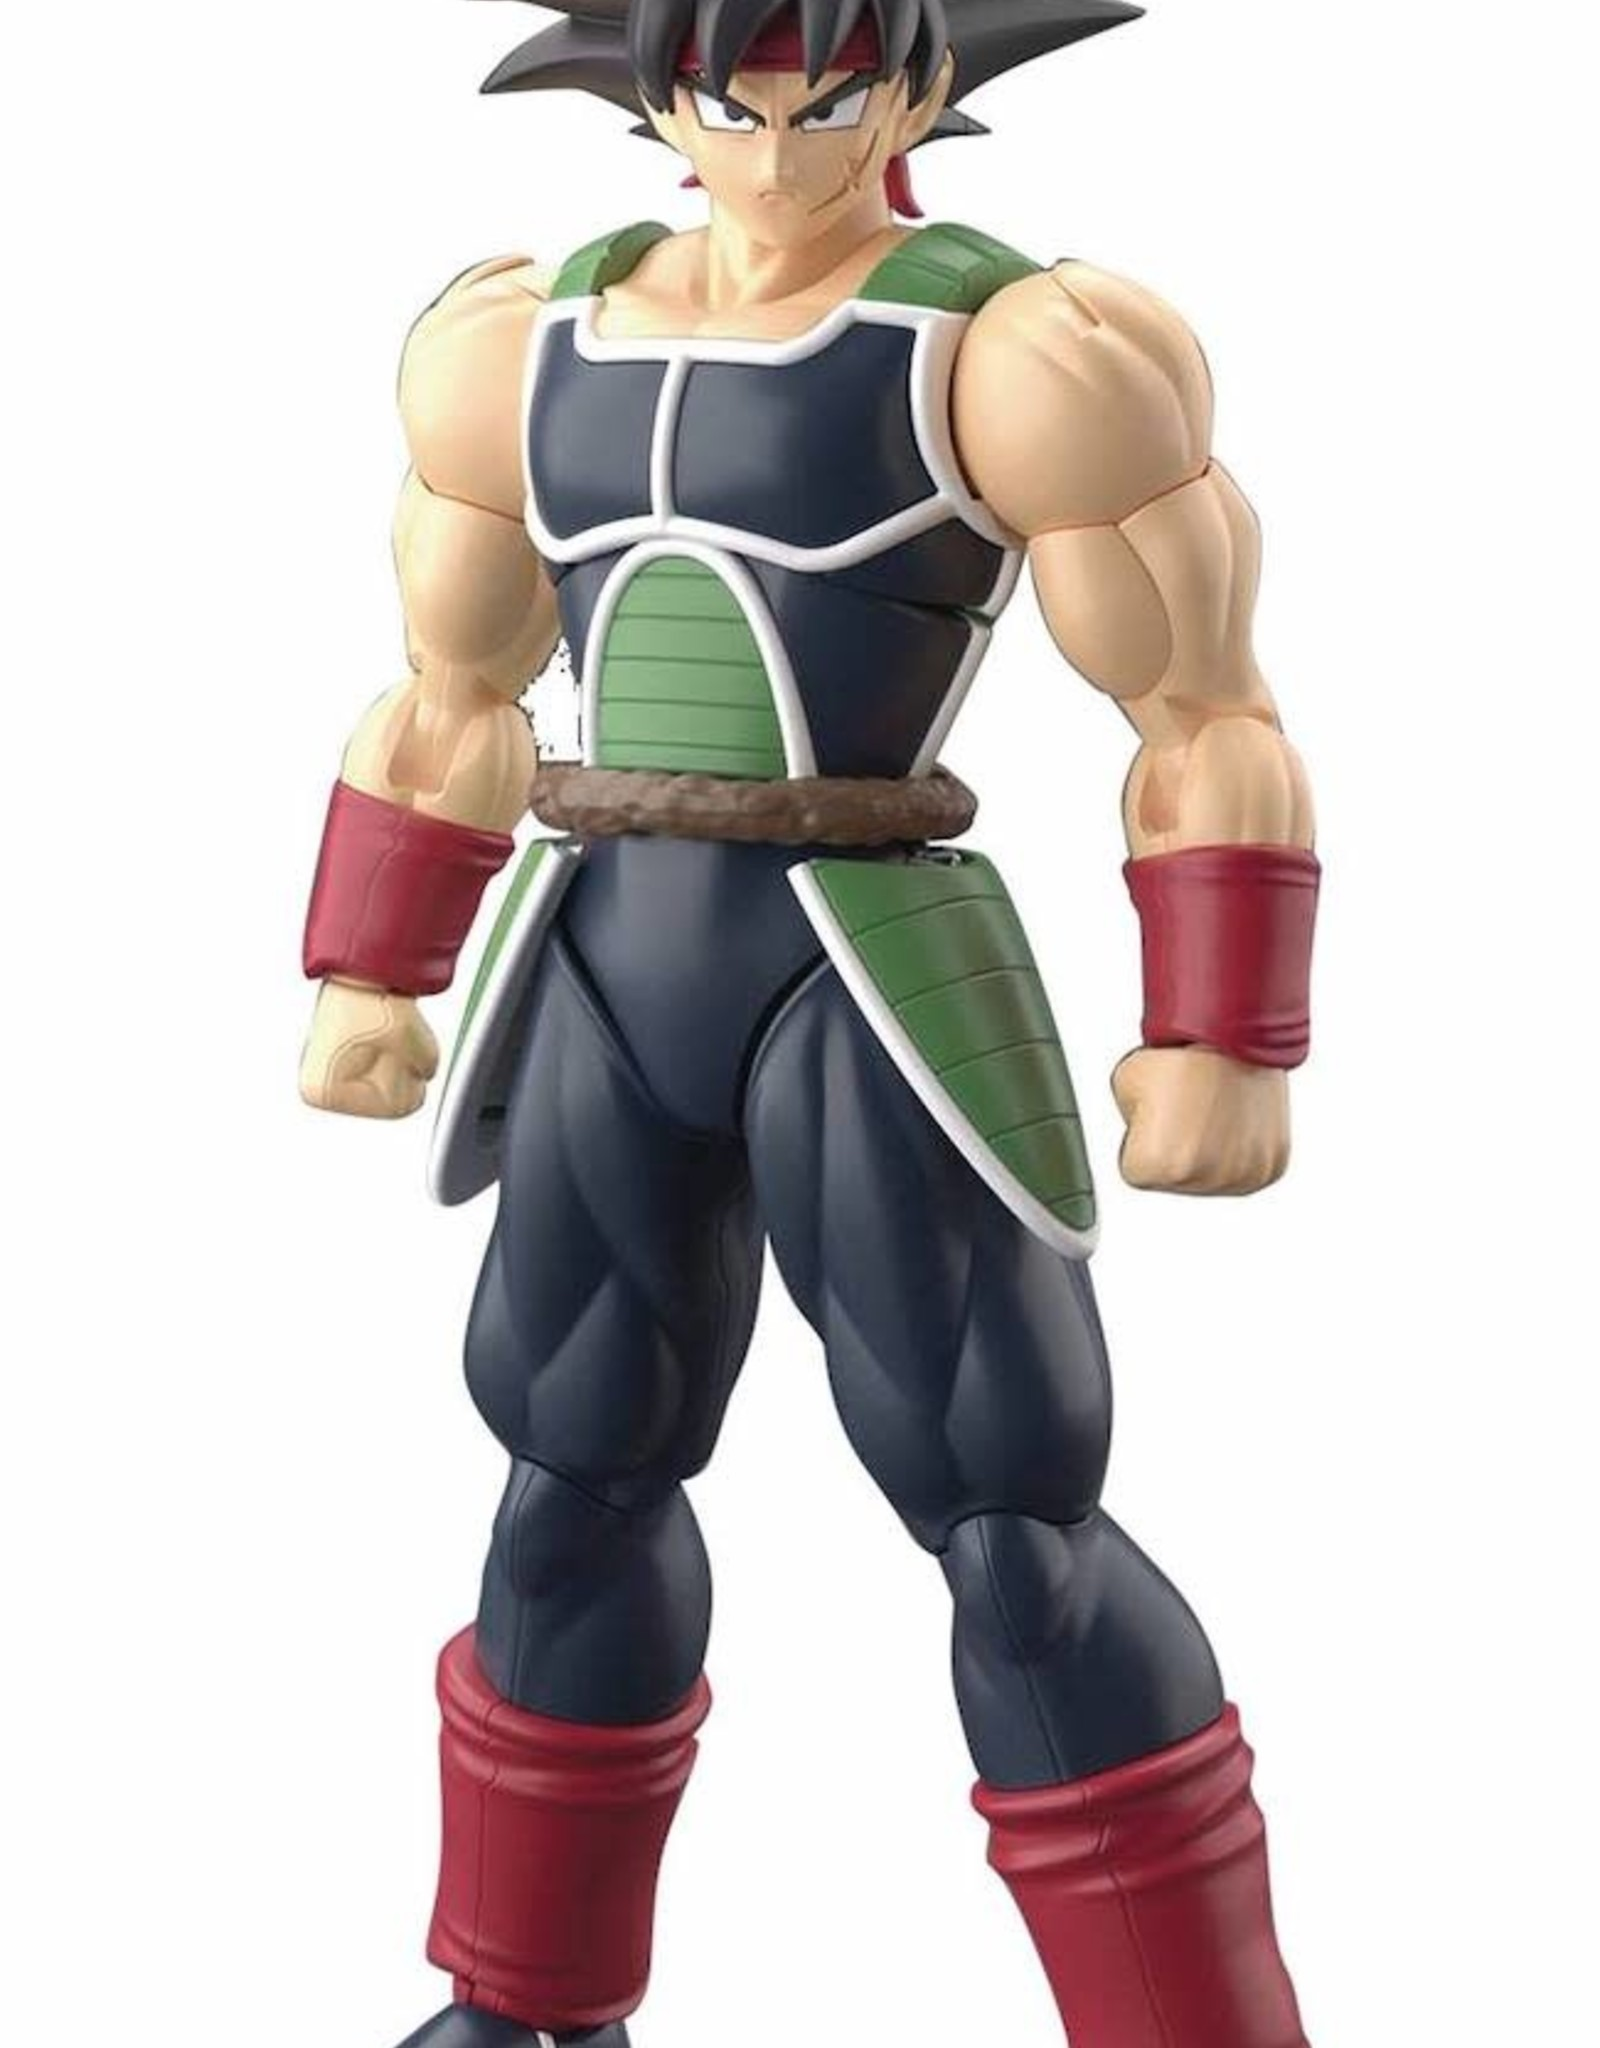 Bandai Dragon Ball Z Bardock Fig-rise Std Mdl Kit